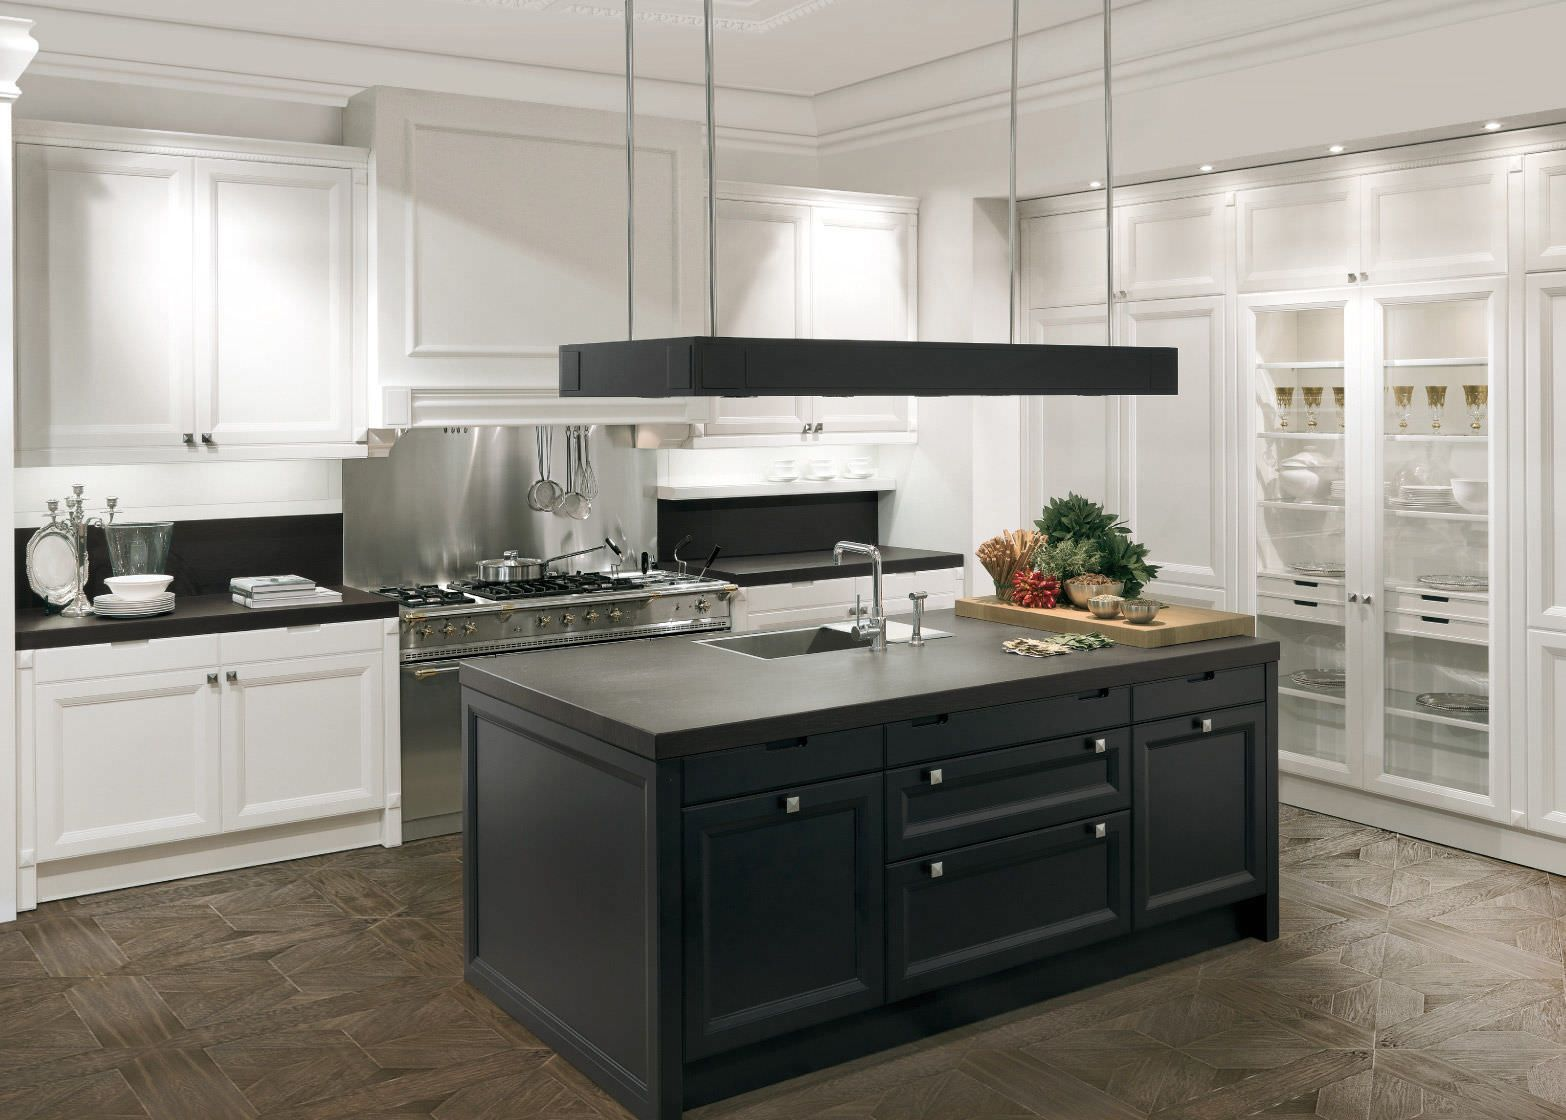 Kitchens With White Cabinets And Black Countertops White Cabinets Black Island With White Kitchen Cabinet